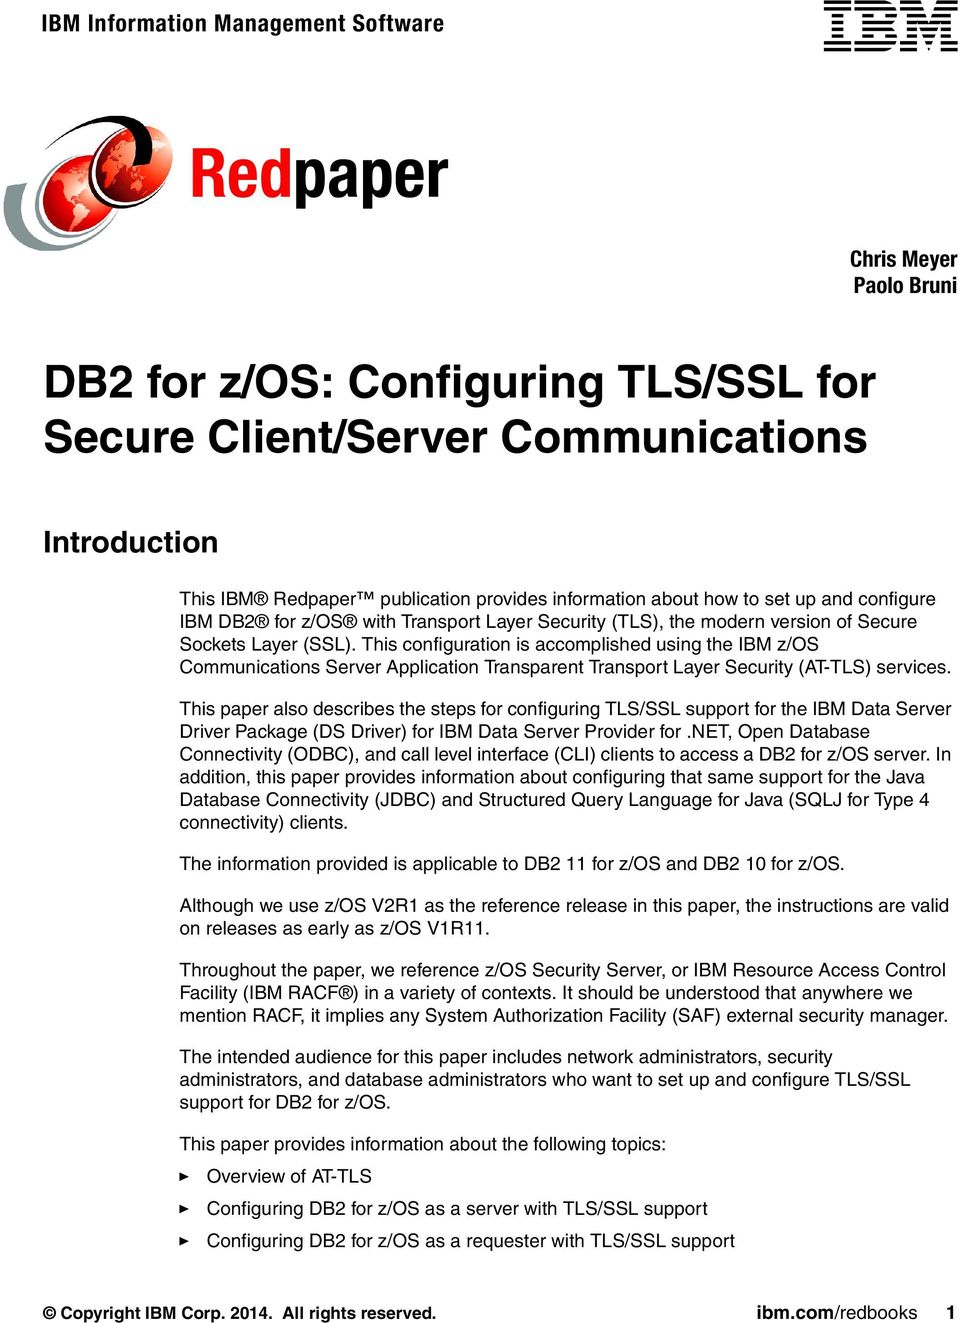 DB2 for z/os: Configuring TLS/SSL for Secure Client/Server